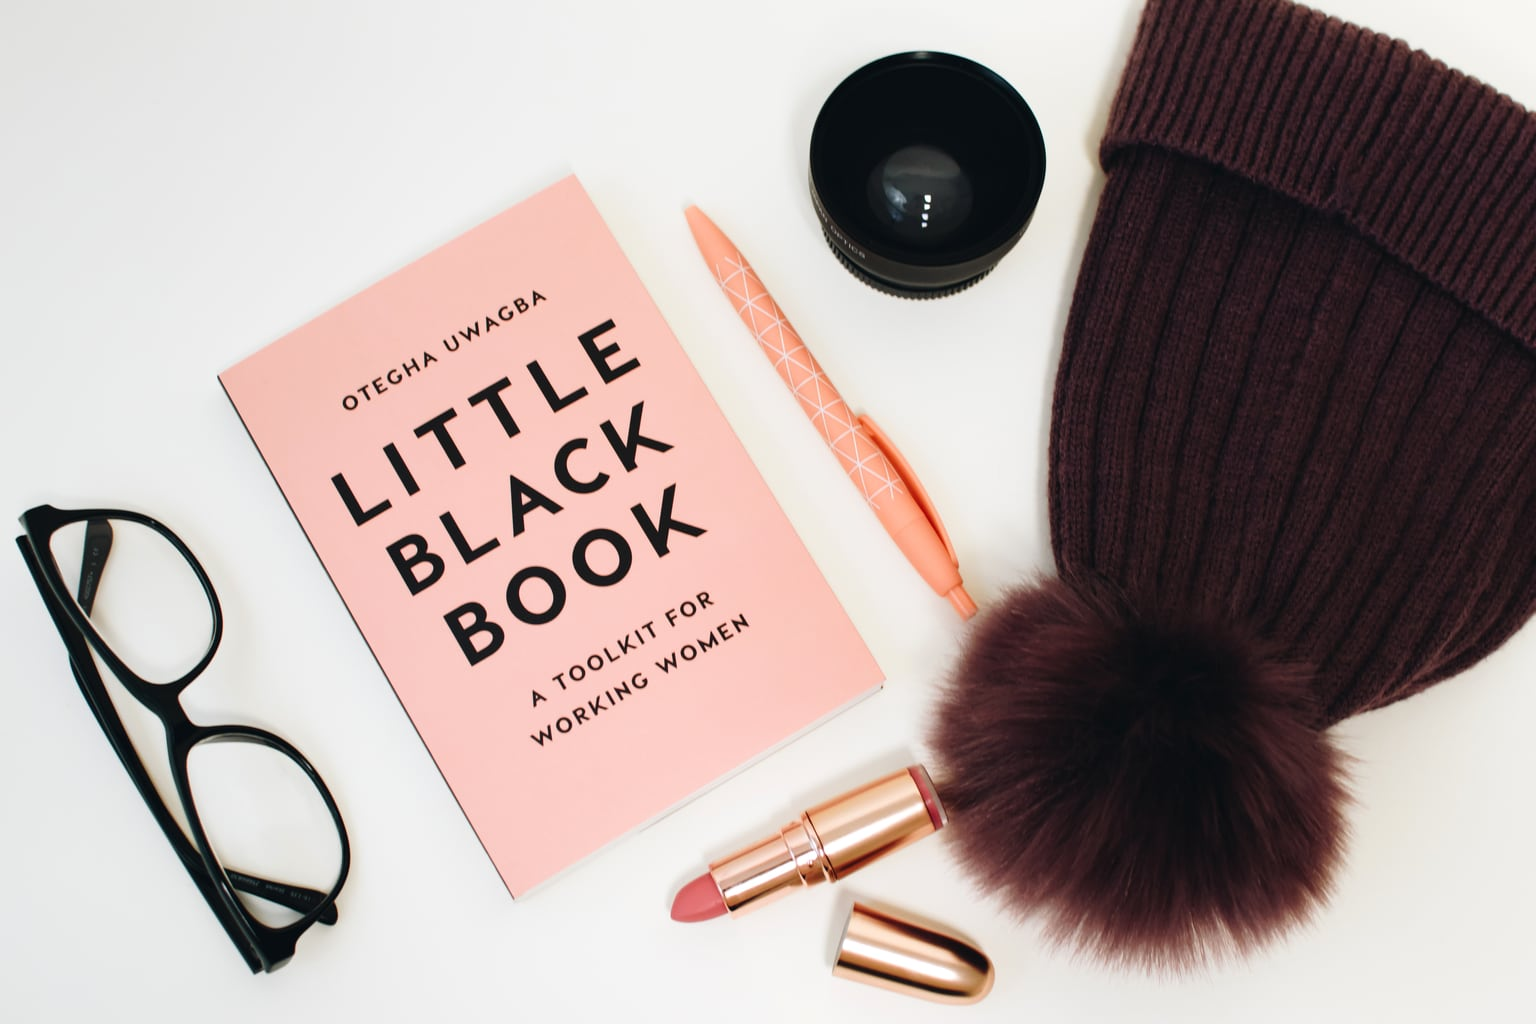 Photo including: glasses, a book, lipstick, a pen, a hat, and a cup.